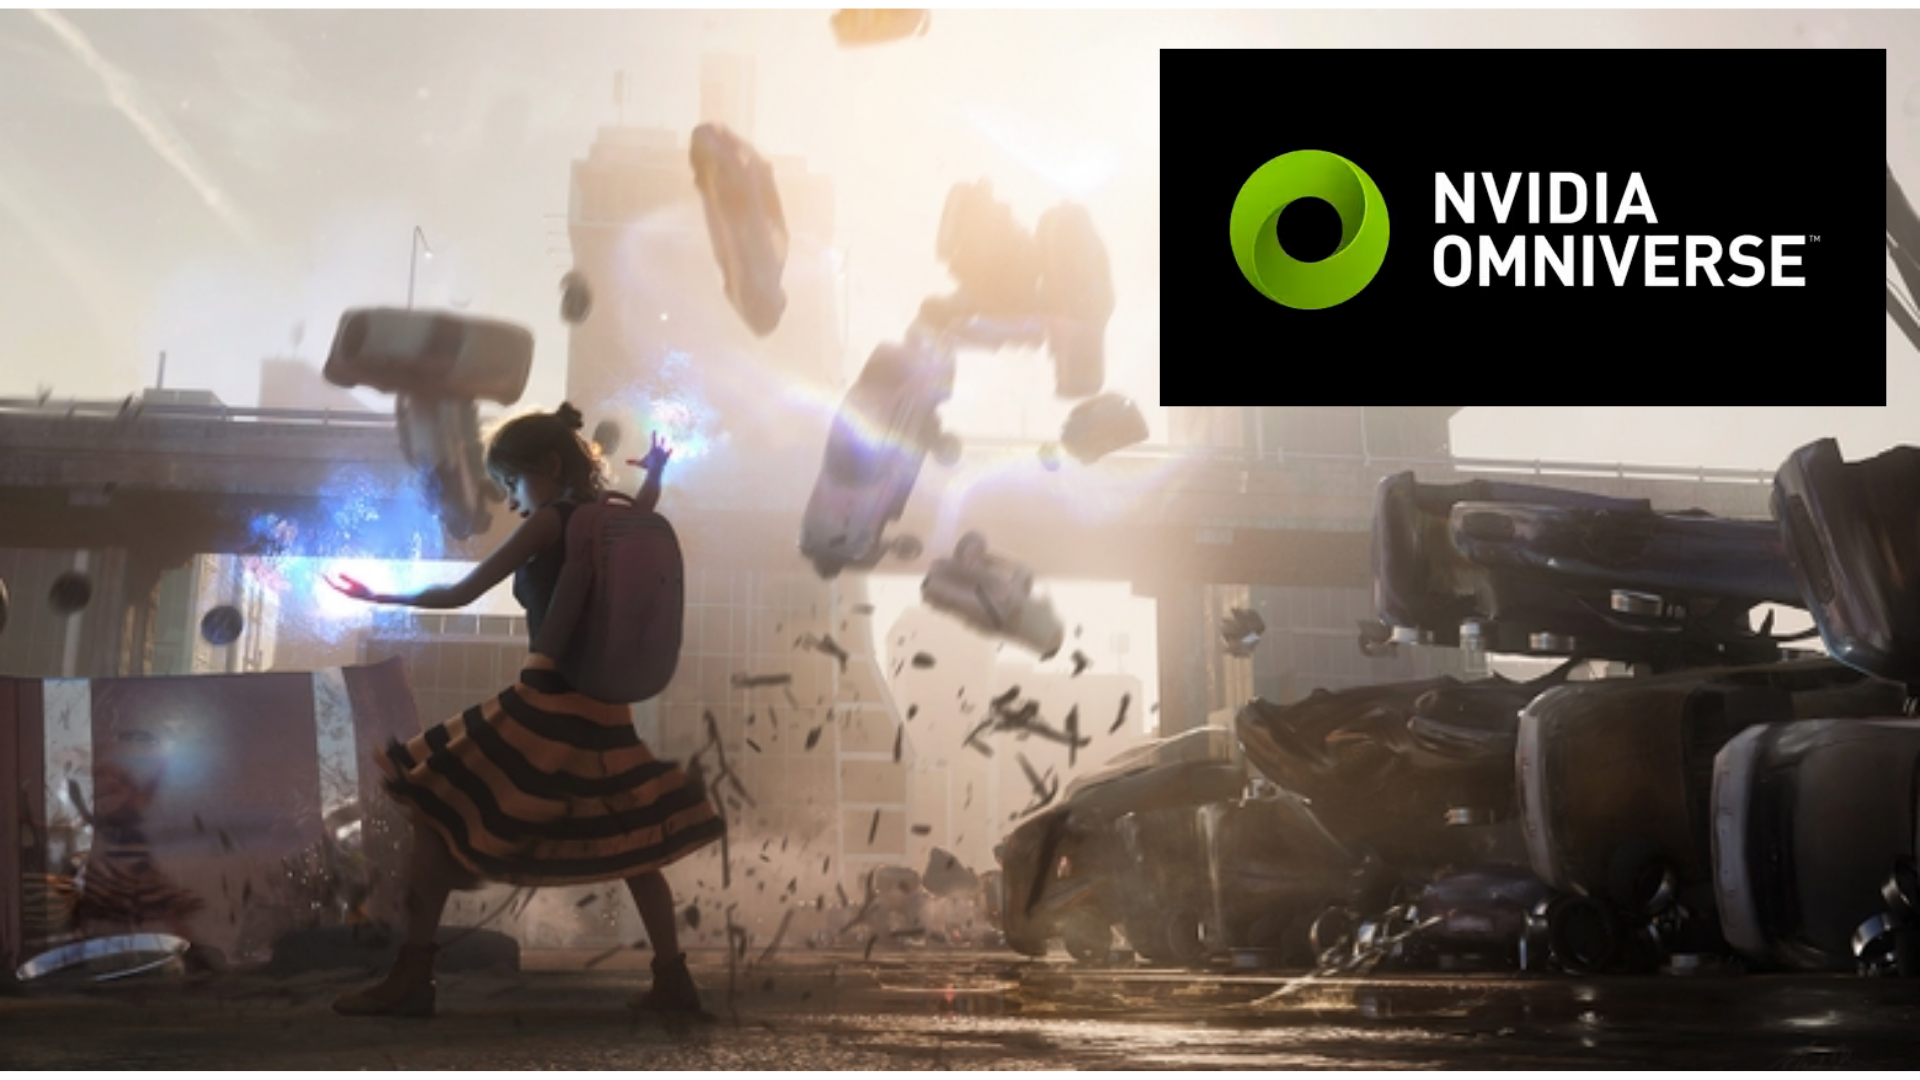 NVIDIA Brings Millions Of Content Creators Into the Metaverse With Expanded Omniverse Platform